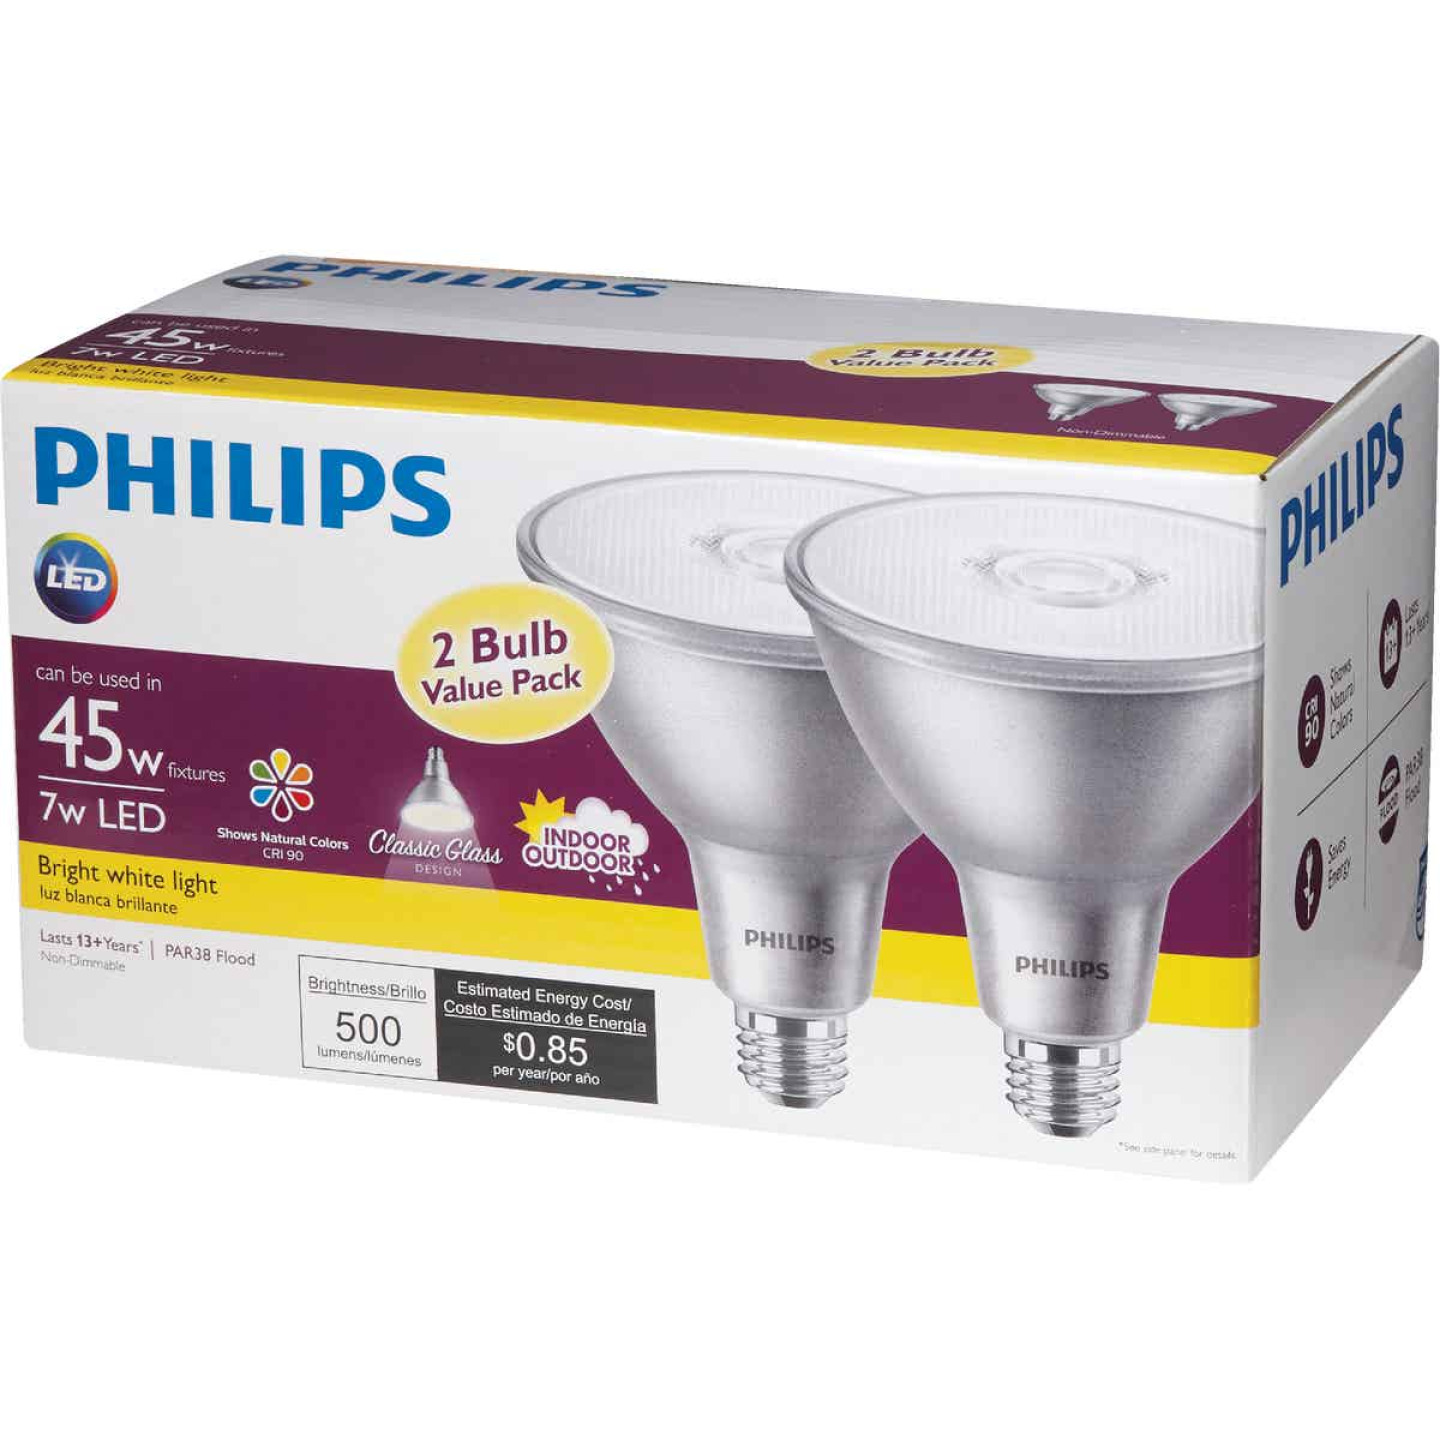 Philips 45W Equivalent Bright White PAR38 Medium Indoor/Outdoor LED Floodlight Light Bulb (2-Pack) Image 5